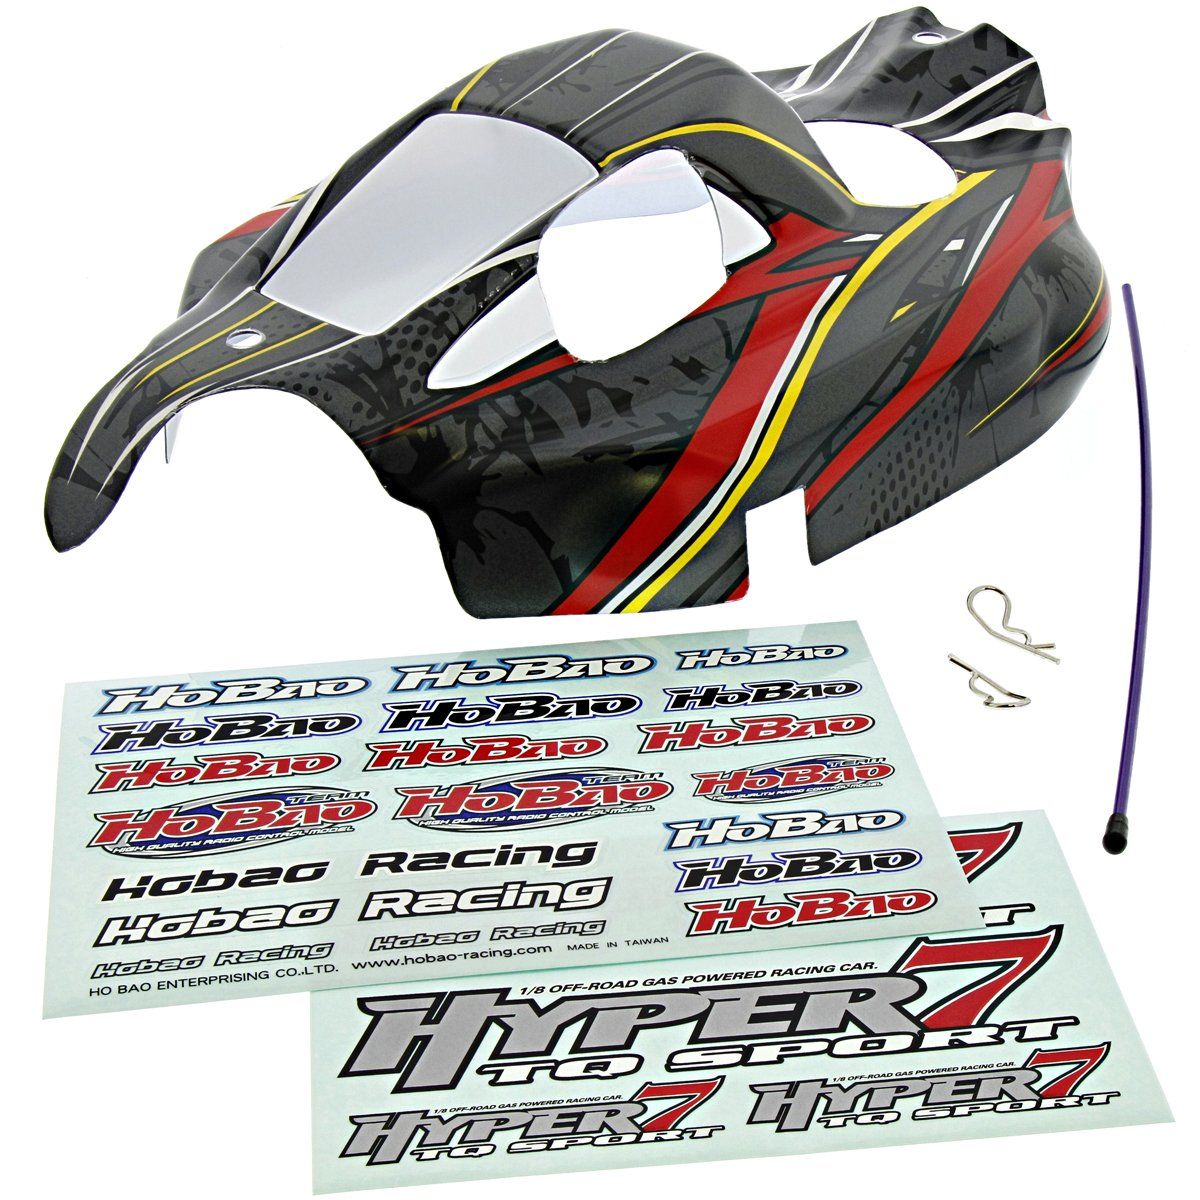 RED /& Yellow Body /& Decals Shell Cover Tube Hobao 1//8 Hyper 7 TQ Ofna Gray